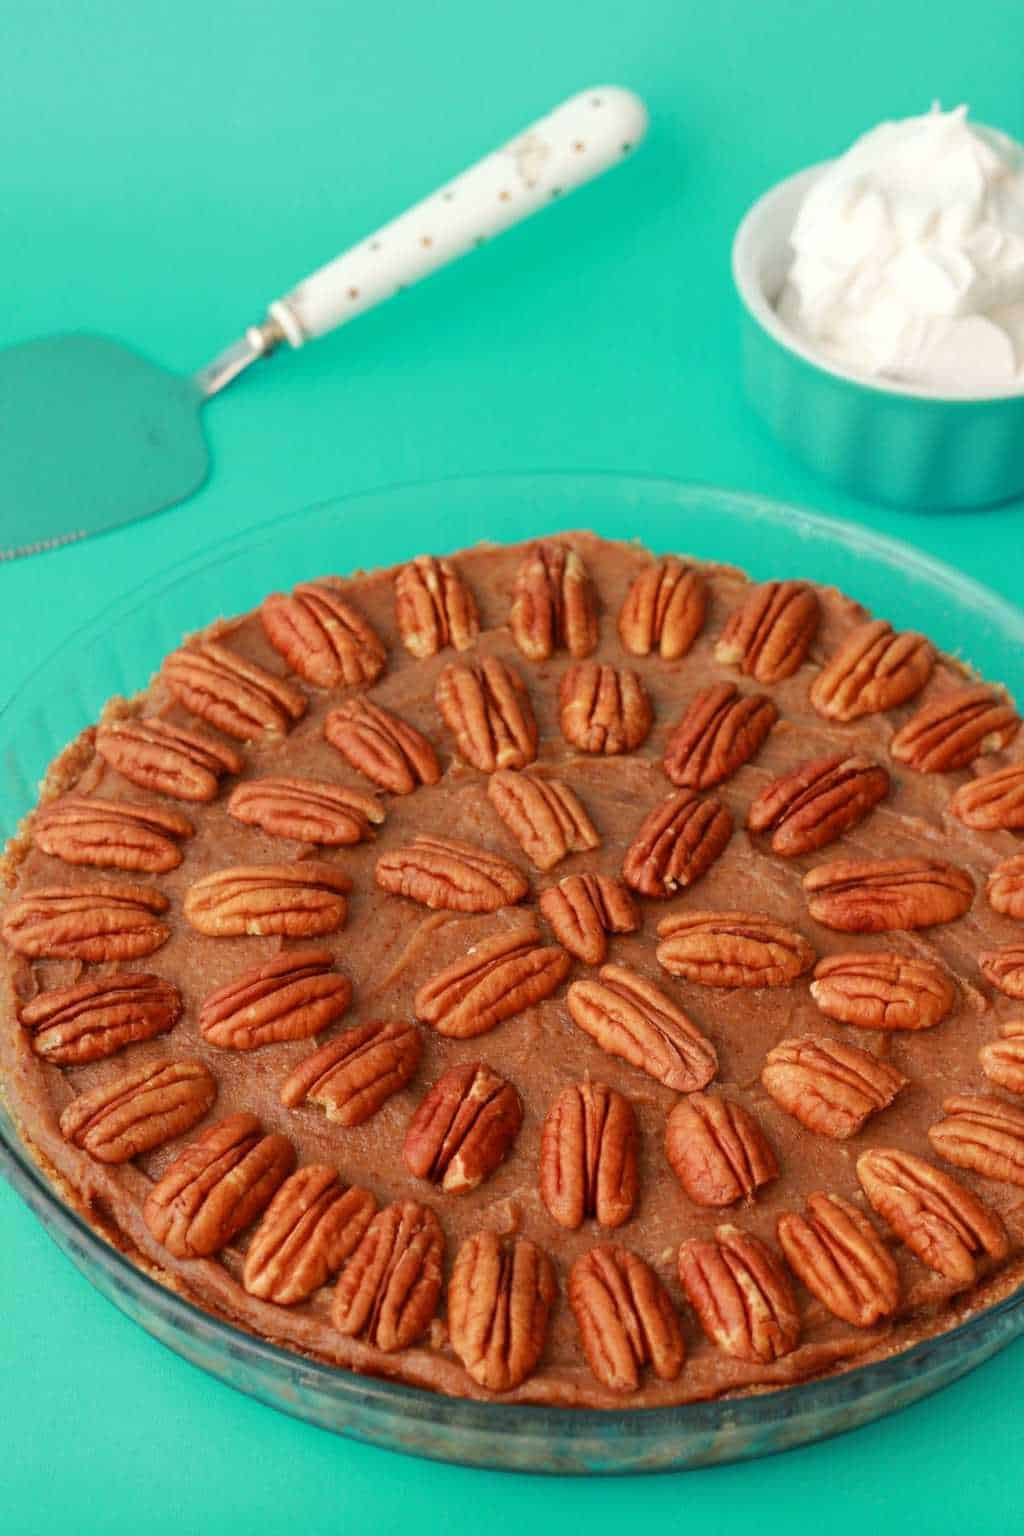 Deliciously raw vegan pecan pie, utterly divine served with vegan whipped cream! Raw and Gluten-Free. #vegan #lovingitvegan #raw #gluten-free #dessert